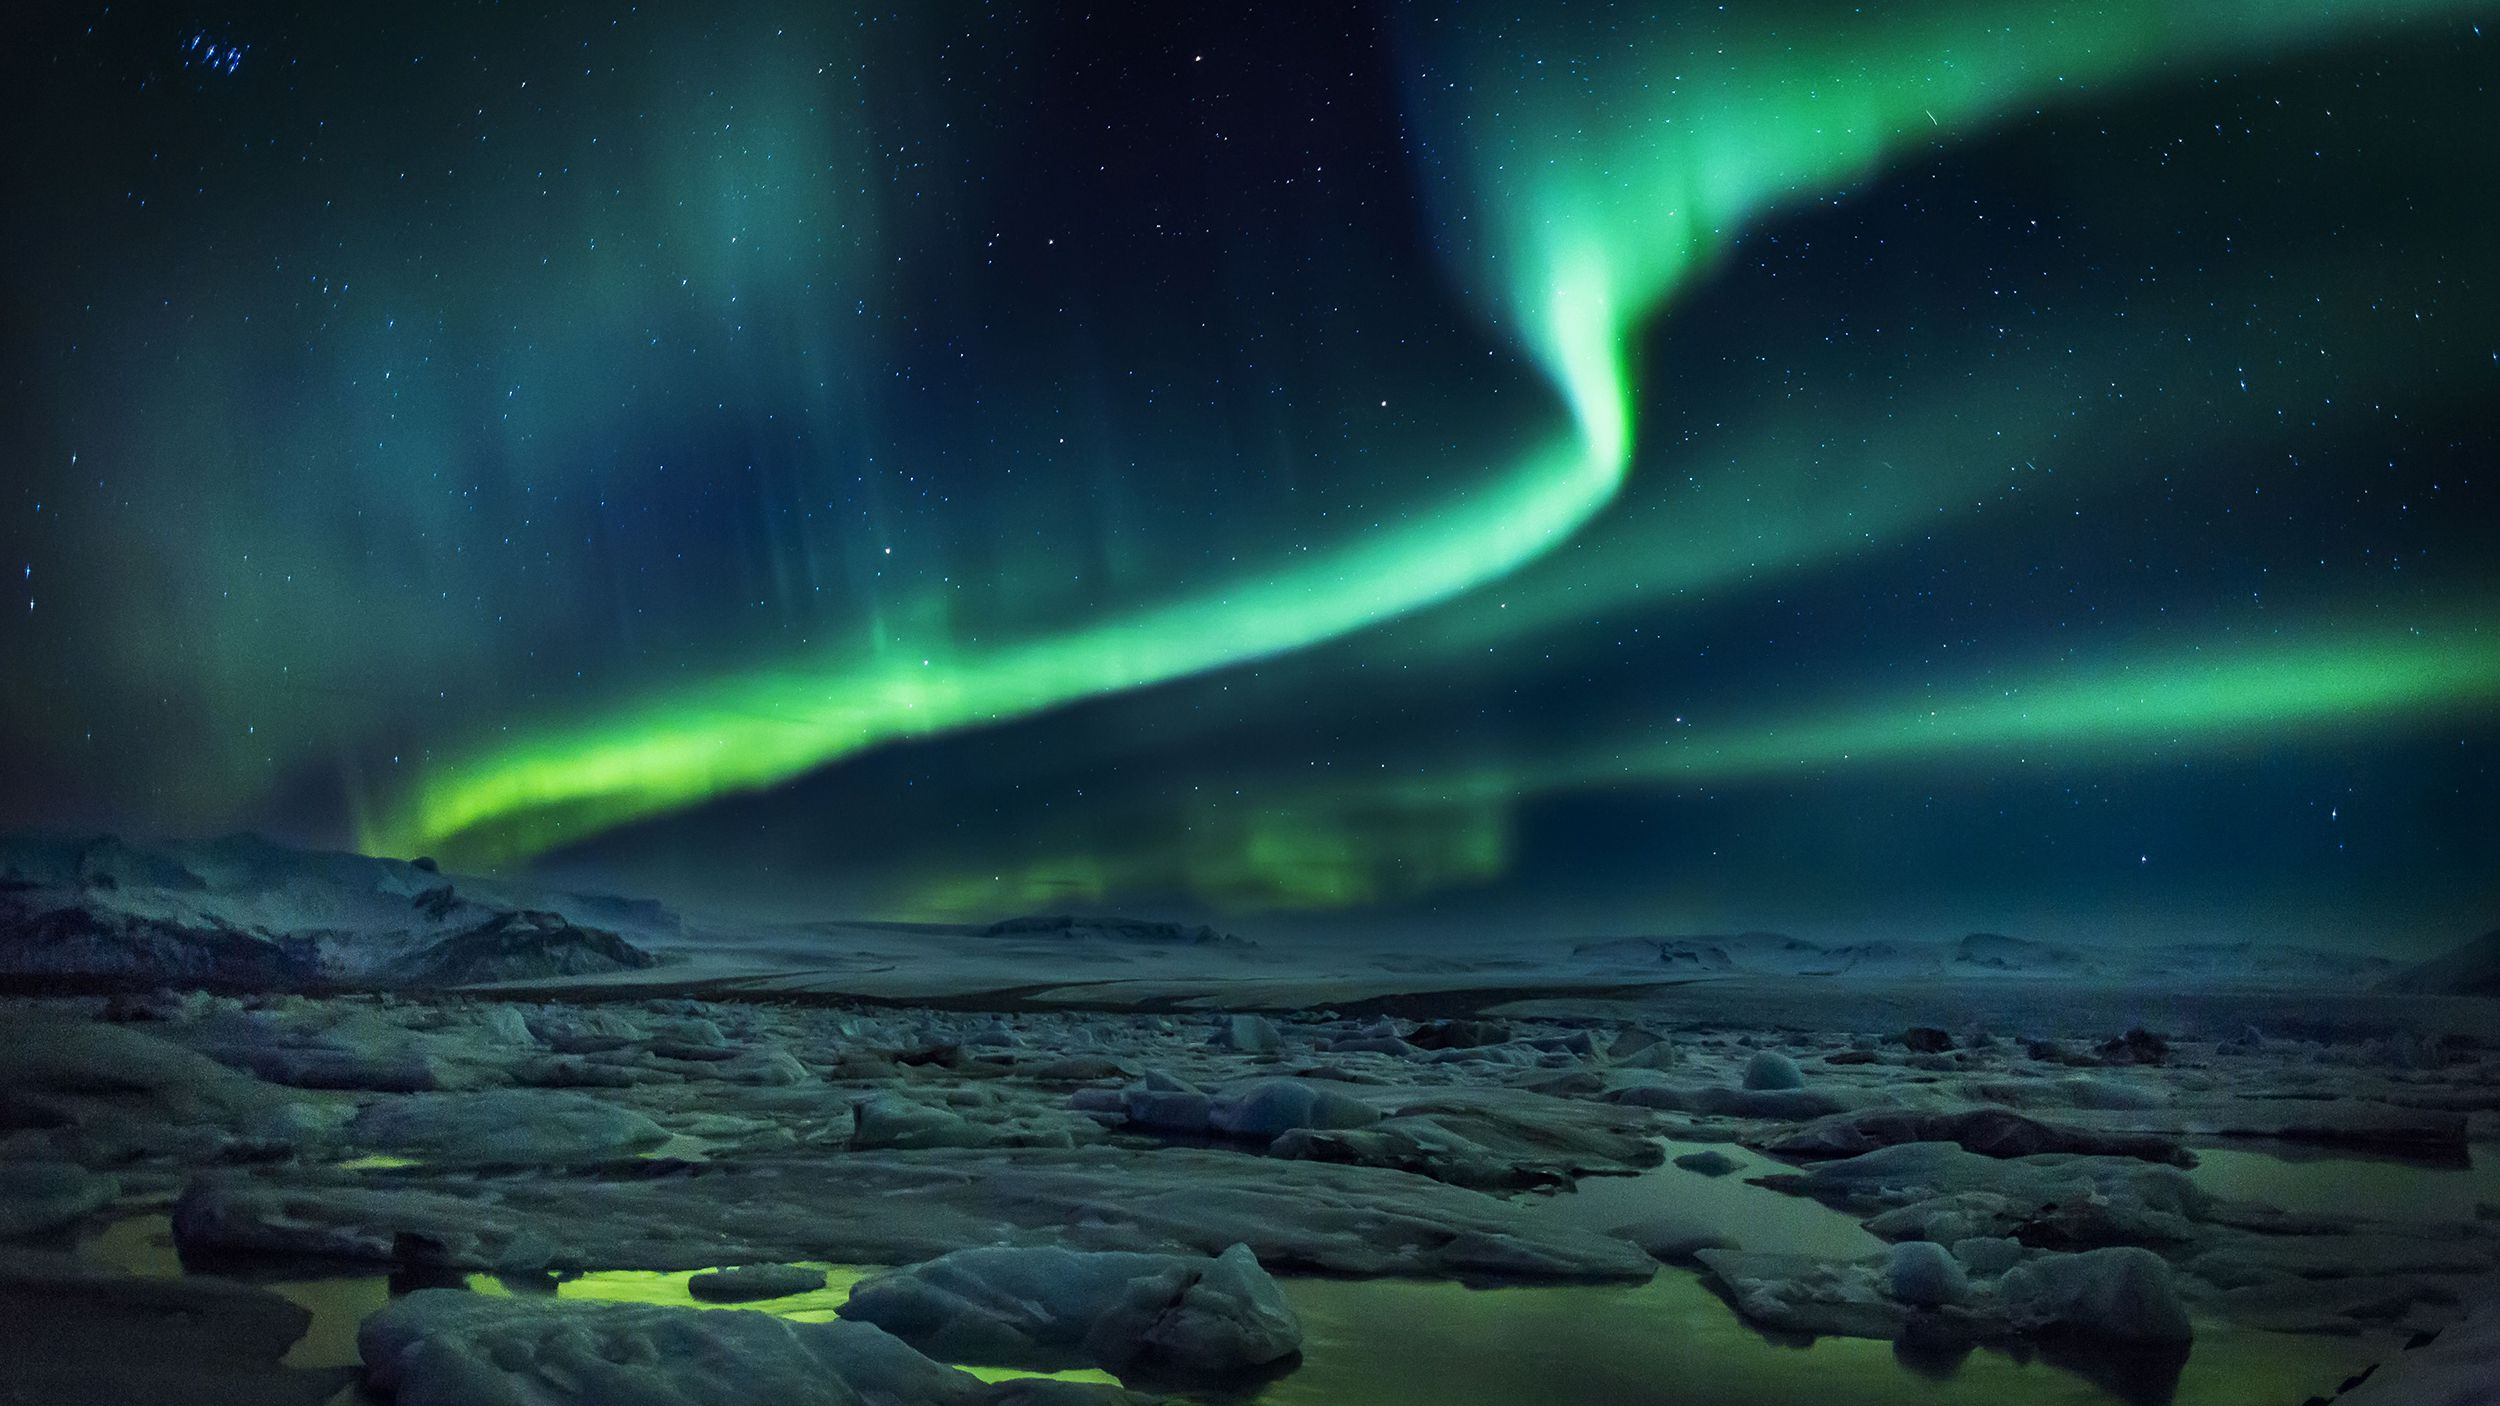 What Causes the Aurora Borealis' Colors?